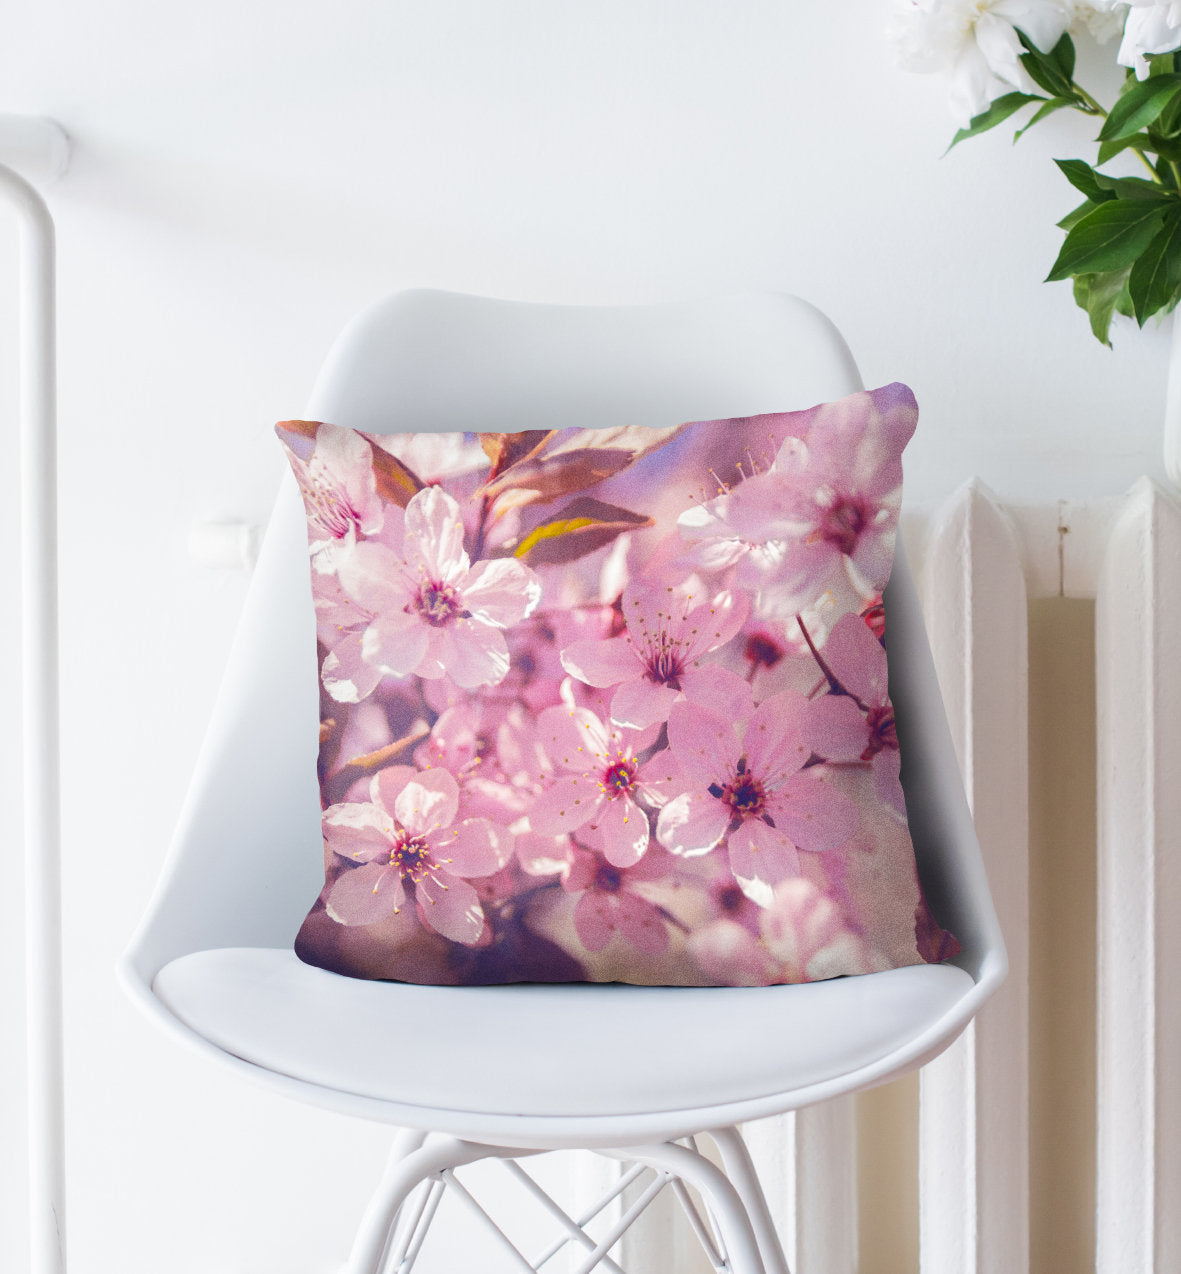 Spring Pillow - Sakura Home Decor in Pink Color | Brandless Artist